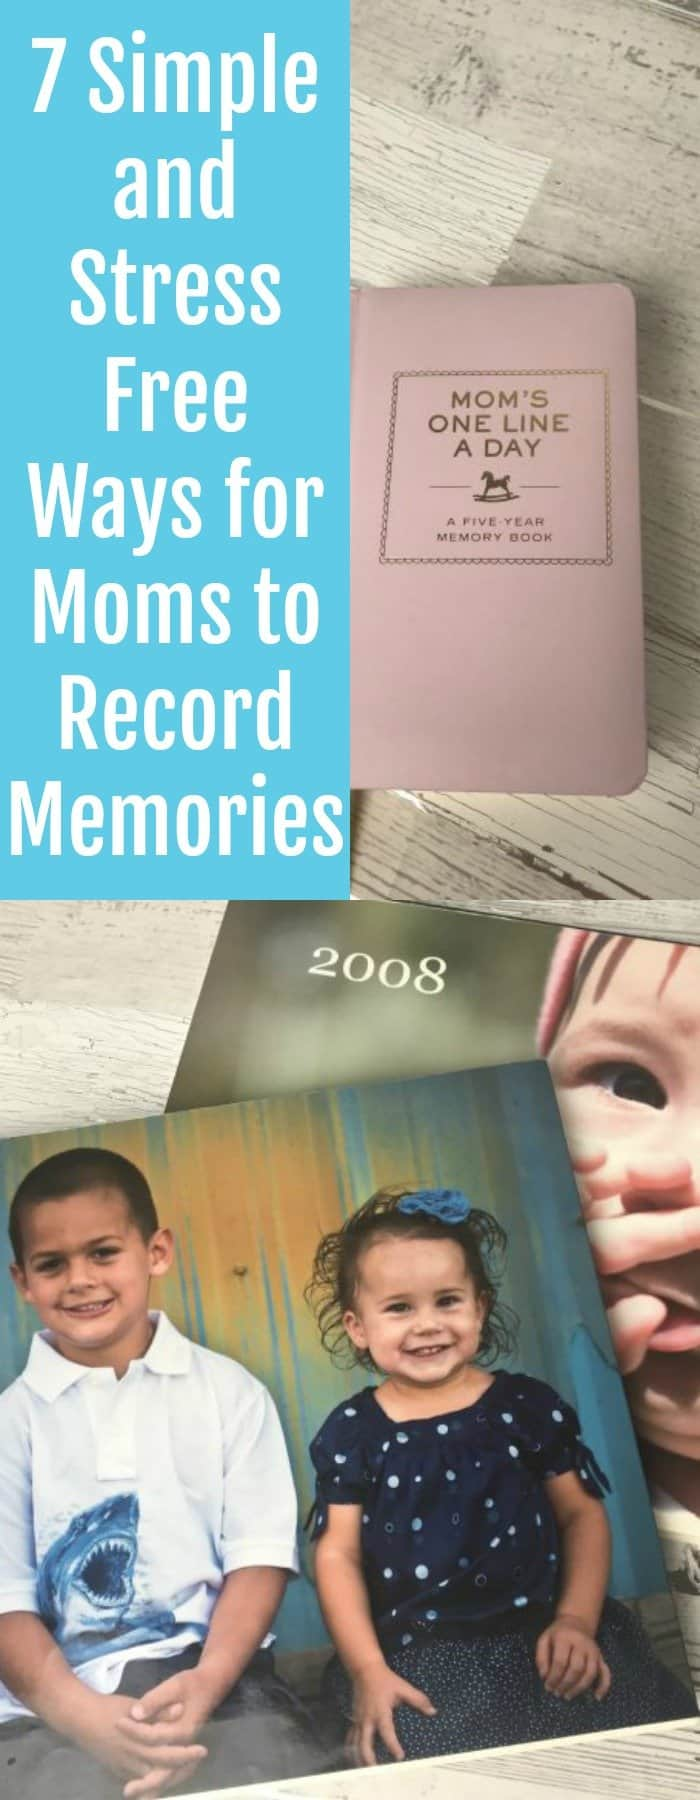 Simple and Stress Free Ways for Moms to Record Memories